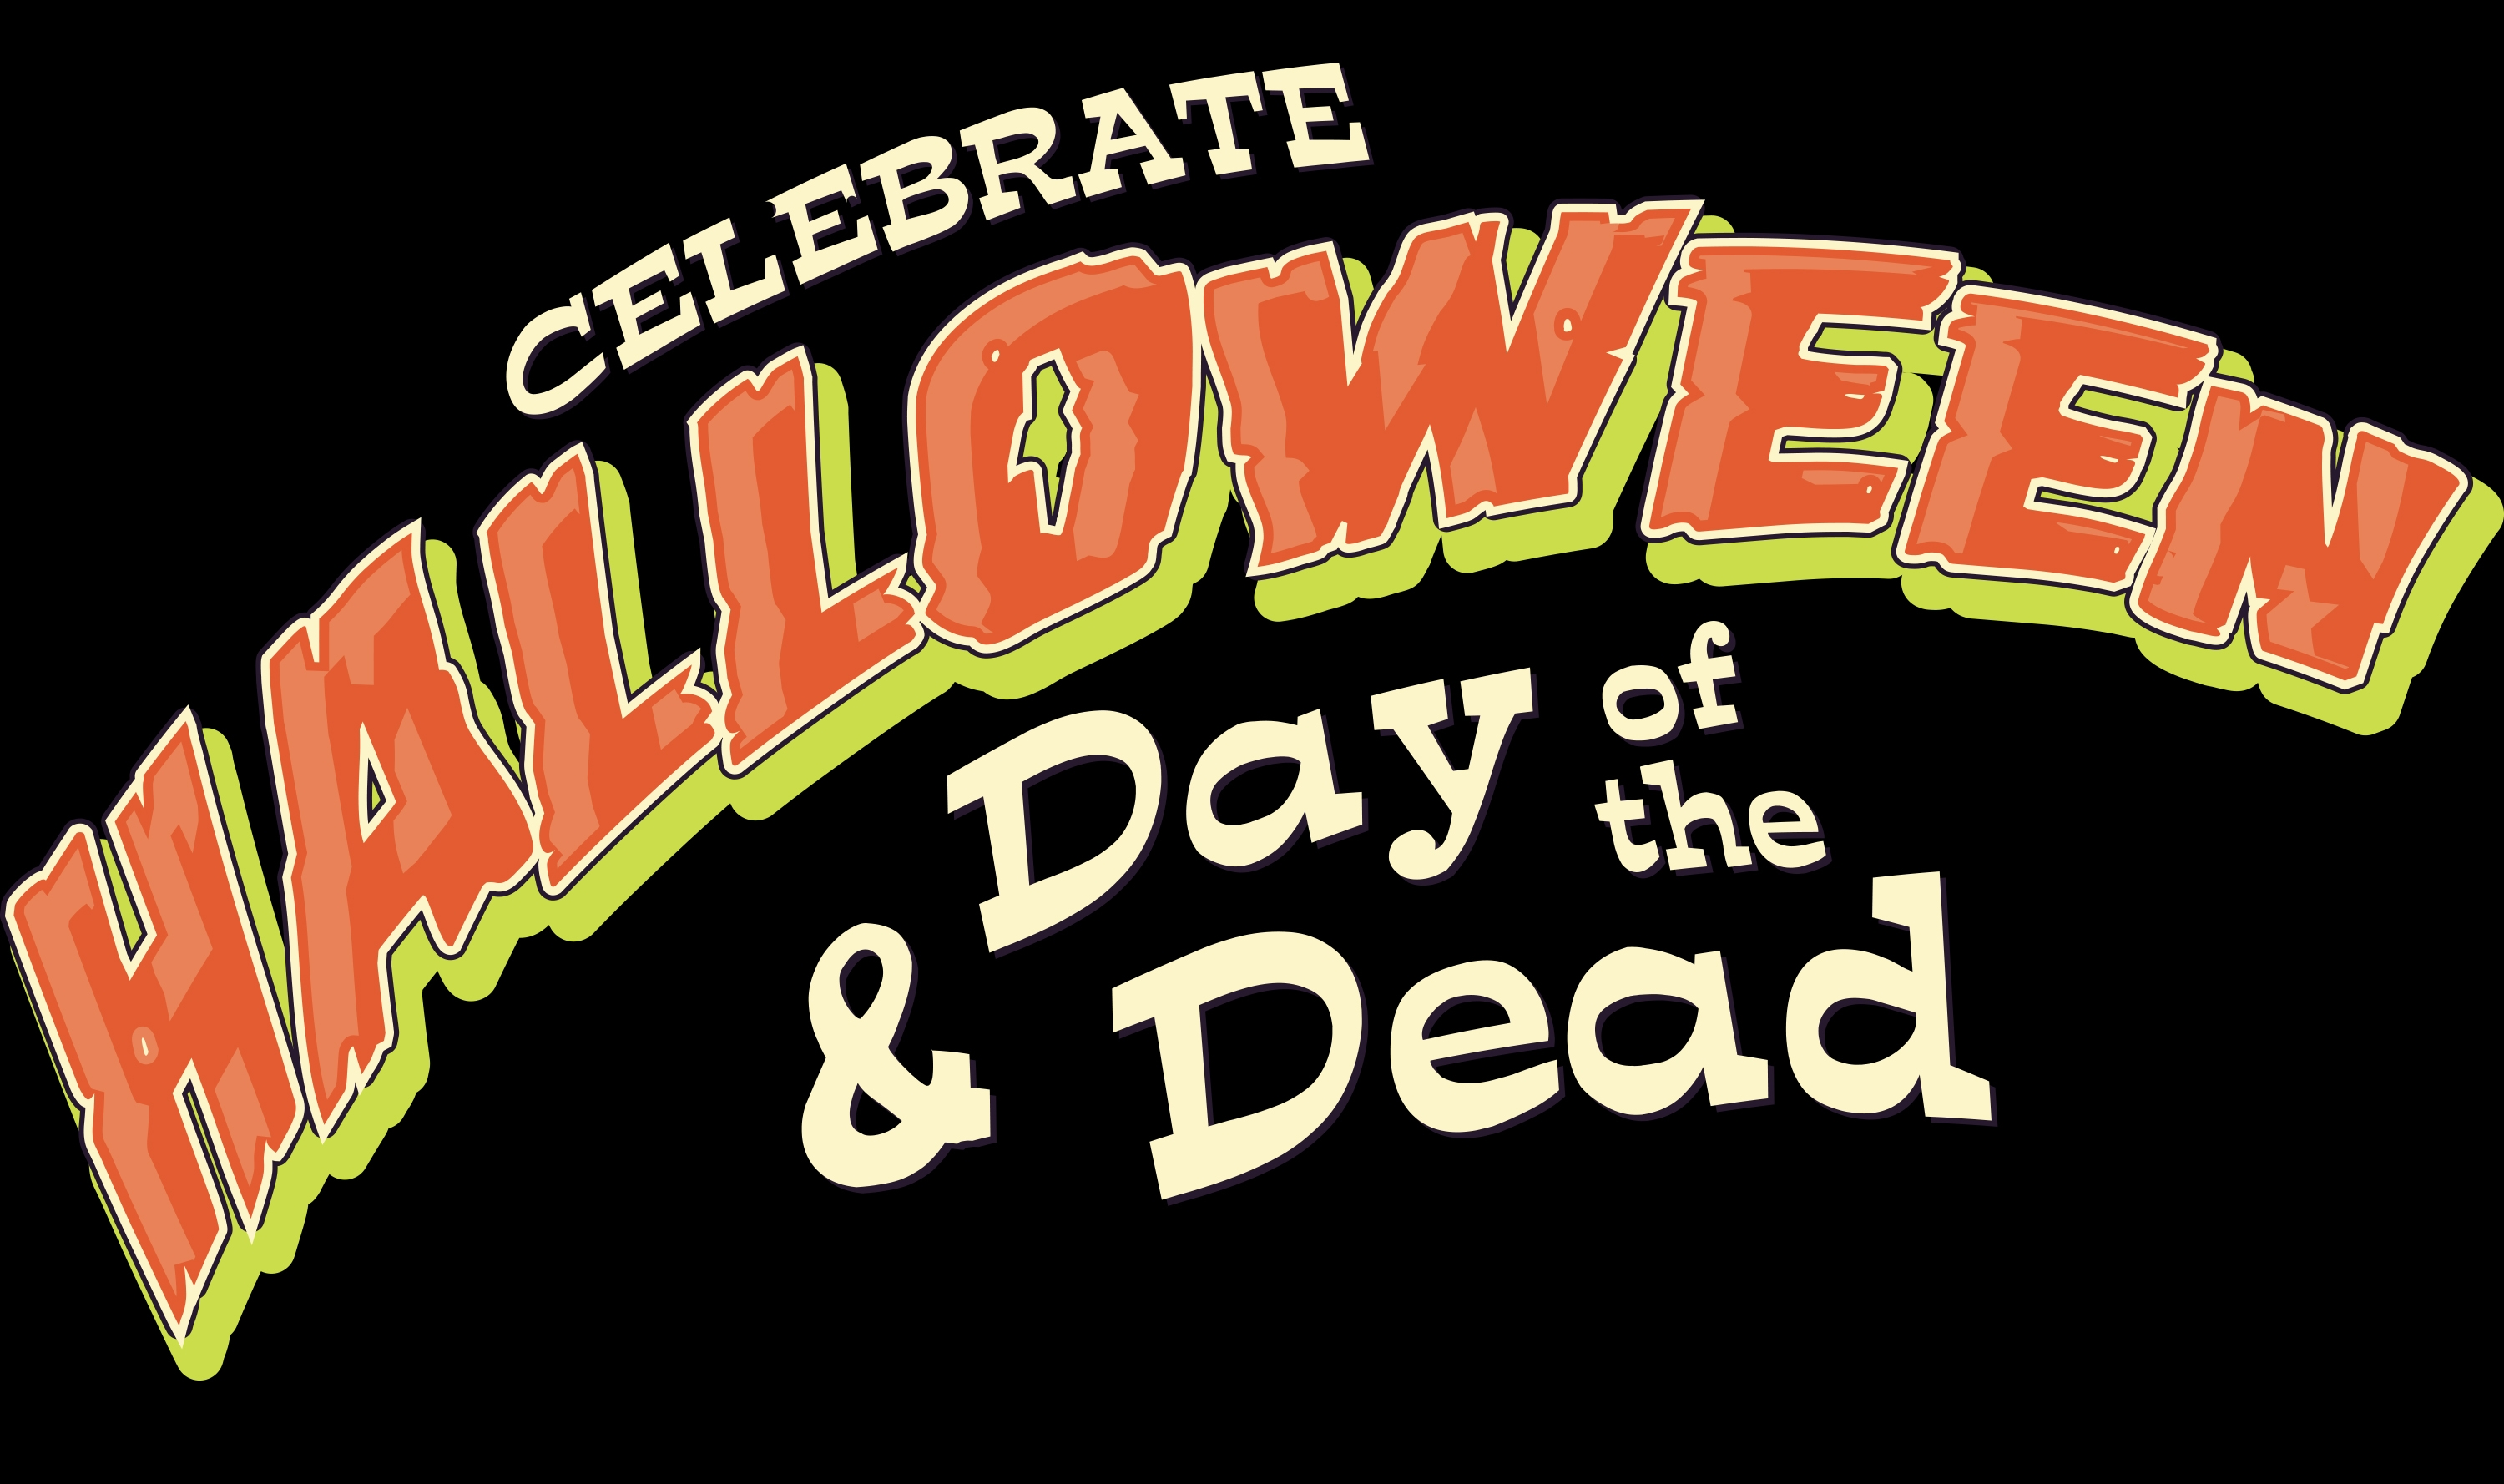 Halloween & Day of the Dead